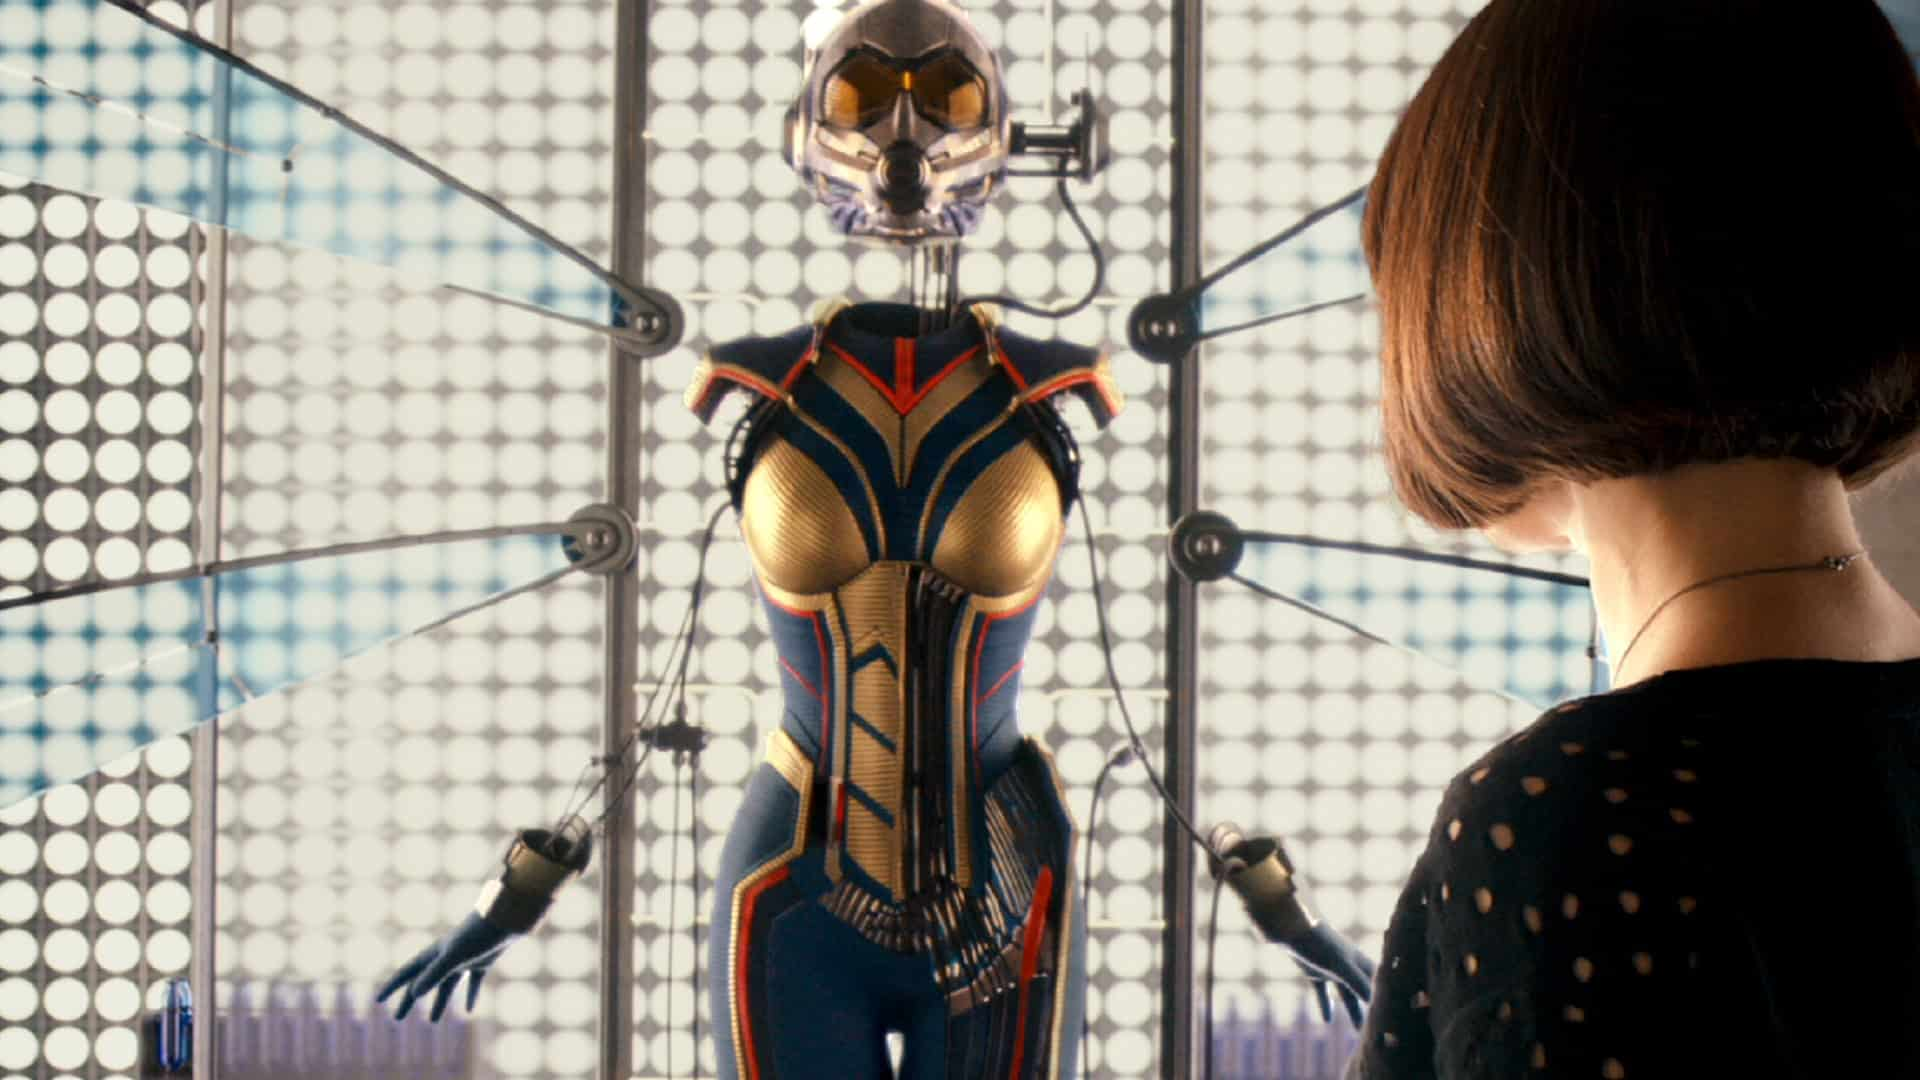 Evangeline Lilly Teases Ant-Man Sequel s Wasp Costume 2623918d11